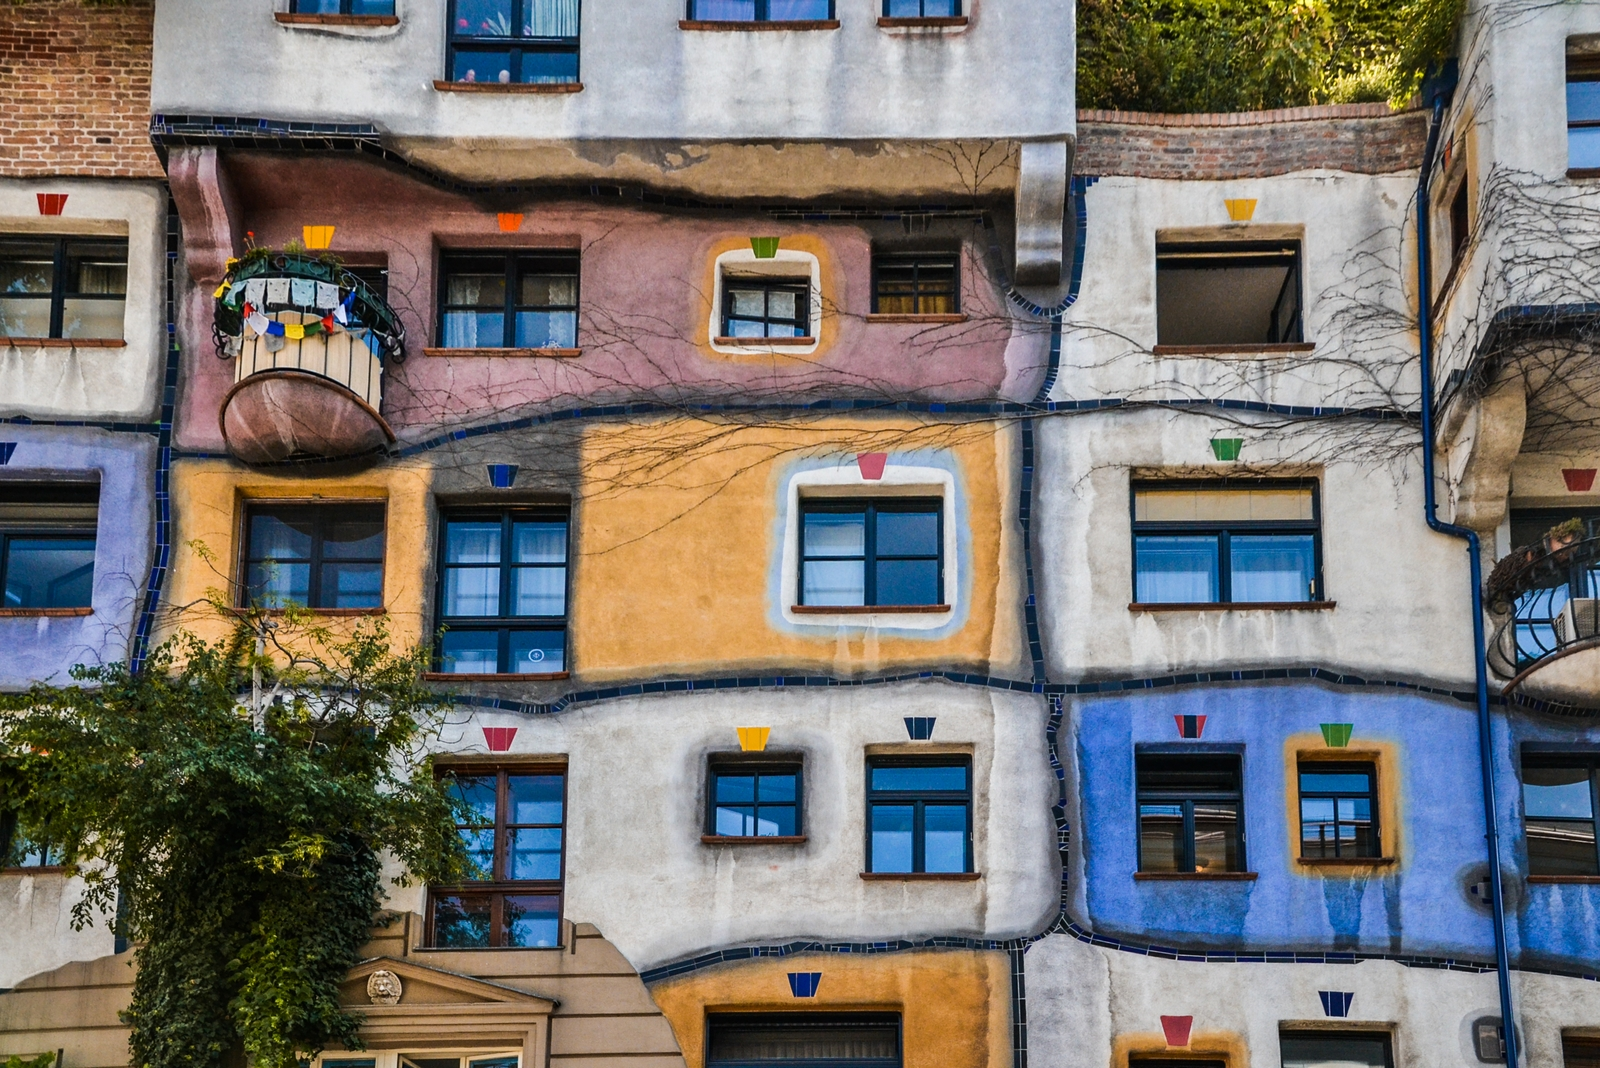 Hudertwasserhaus, one of the 10 best things to do in Vienna, Austria - from travel blog http:://Epepa.eu